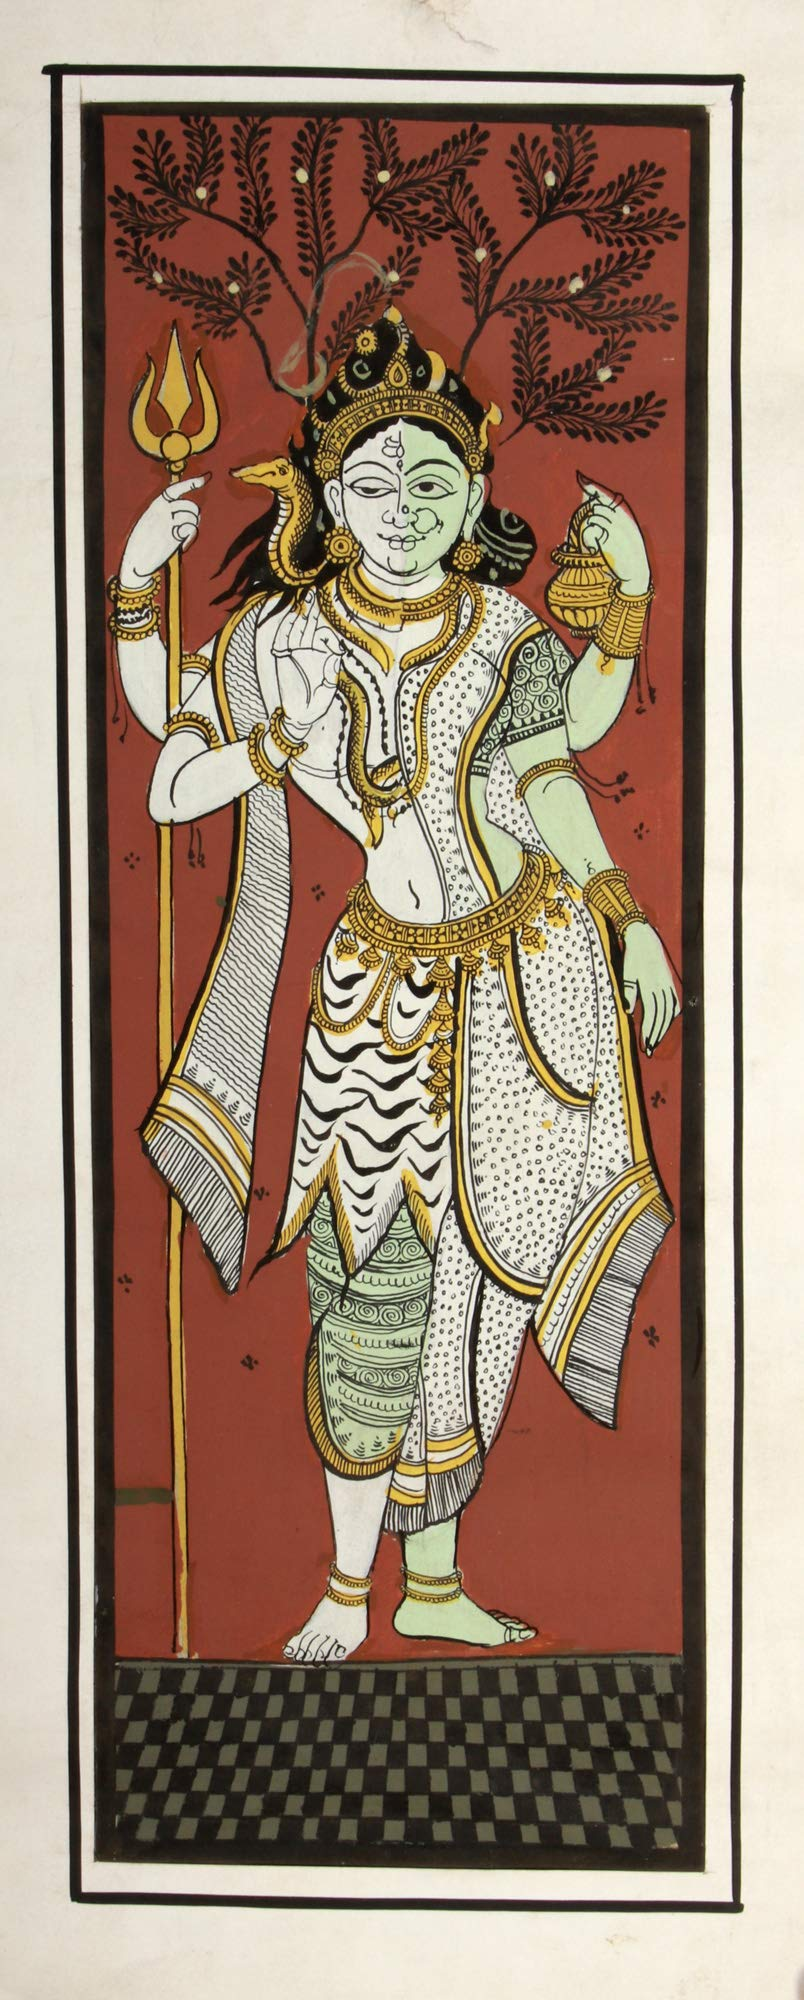 Exotic India Shiva Parvati in Ardhanarishvara Form - Water Color Painting on Silk - Folk Art From The Temple Town